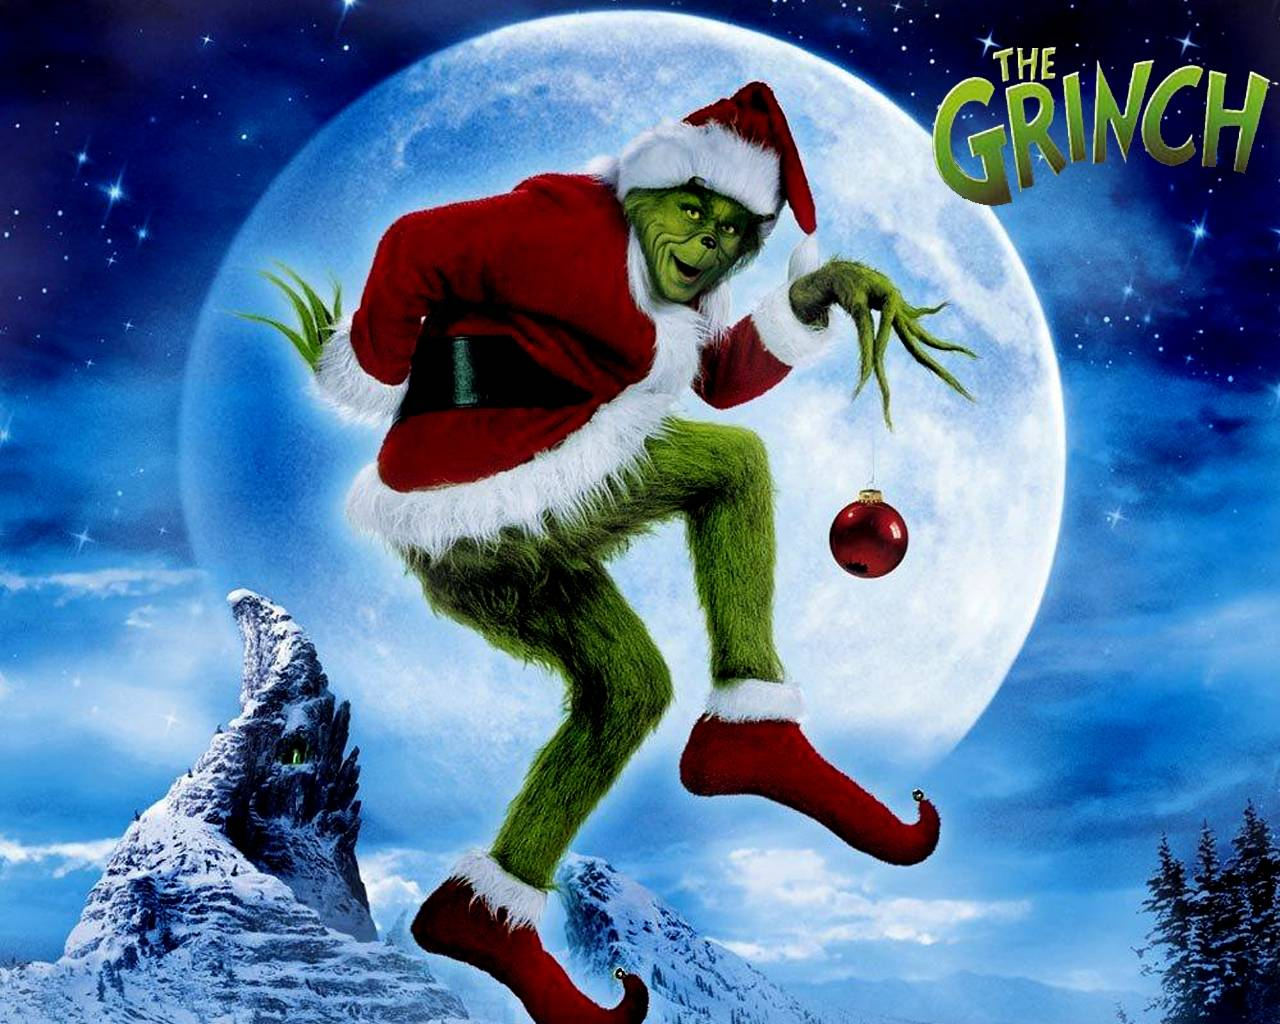 The Grinch (Wallpaper) - Movies Wallpaper